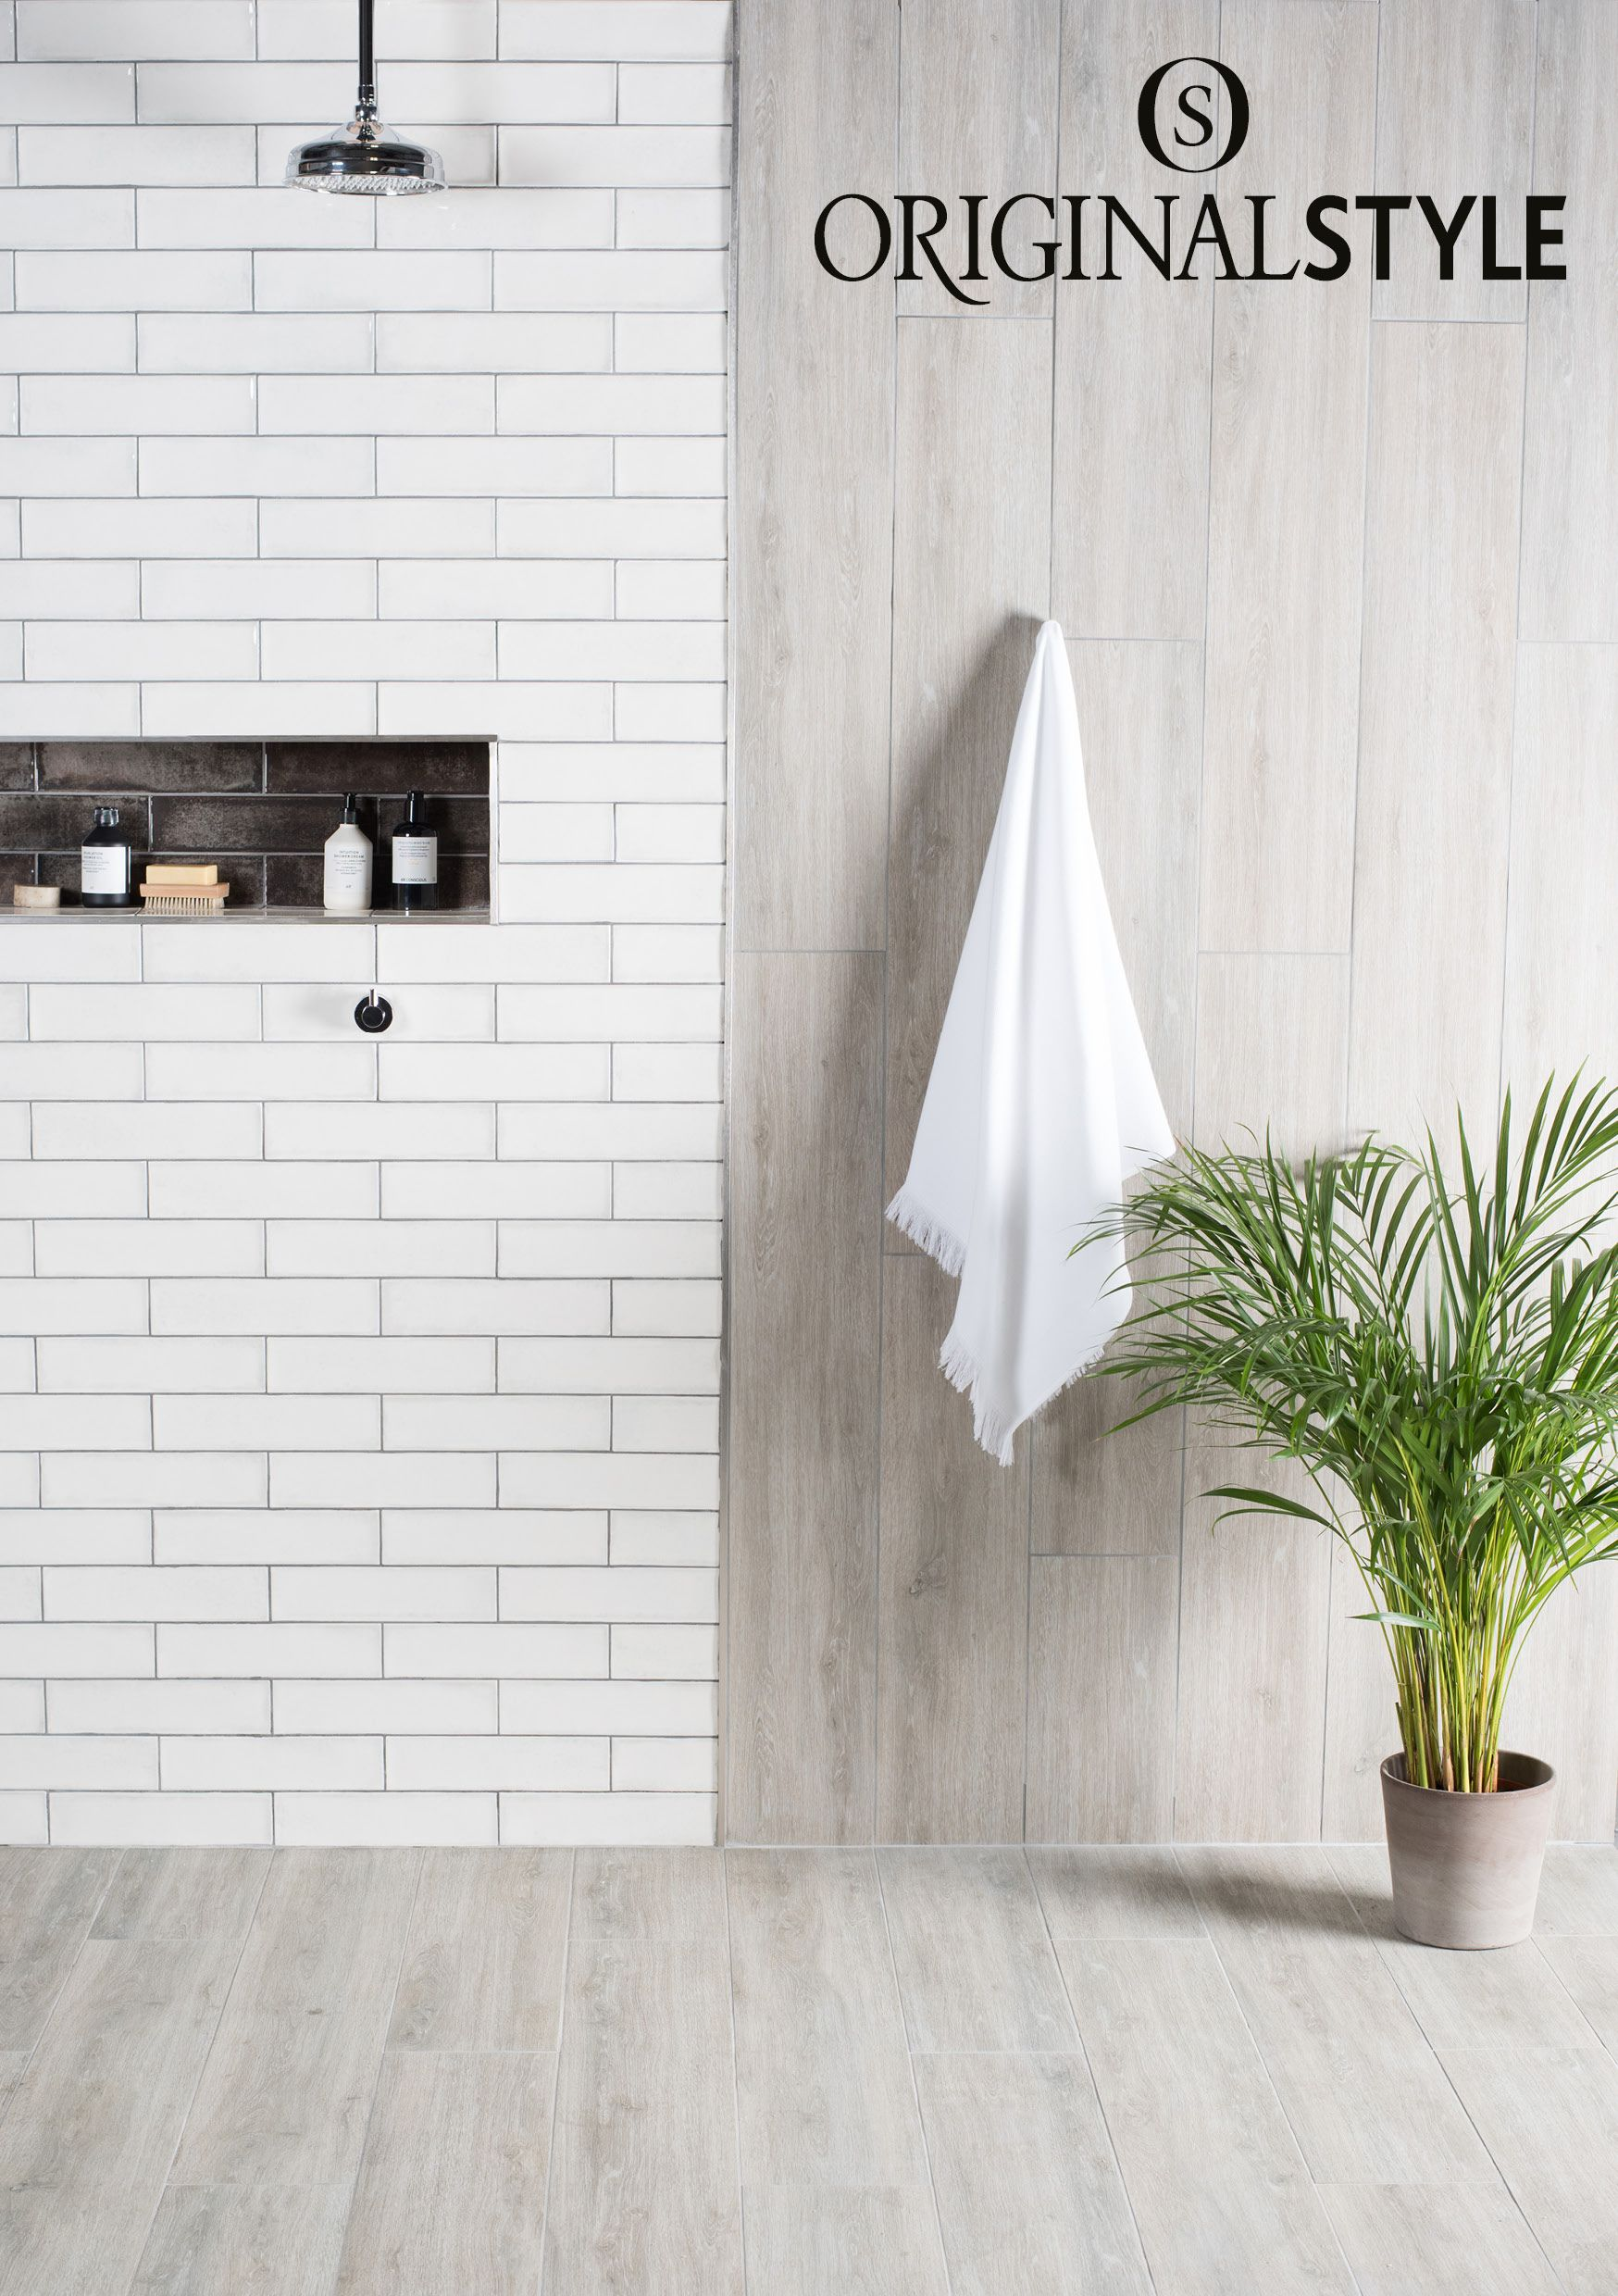 Alamo Ash Paired With Montblanc White From Original Style S Tileworks Collection Use The Combination Of The Smoot Wood Effect Tiles Style Tile Tiles